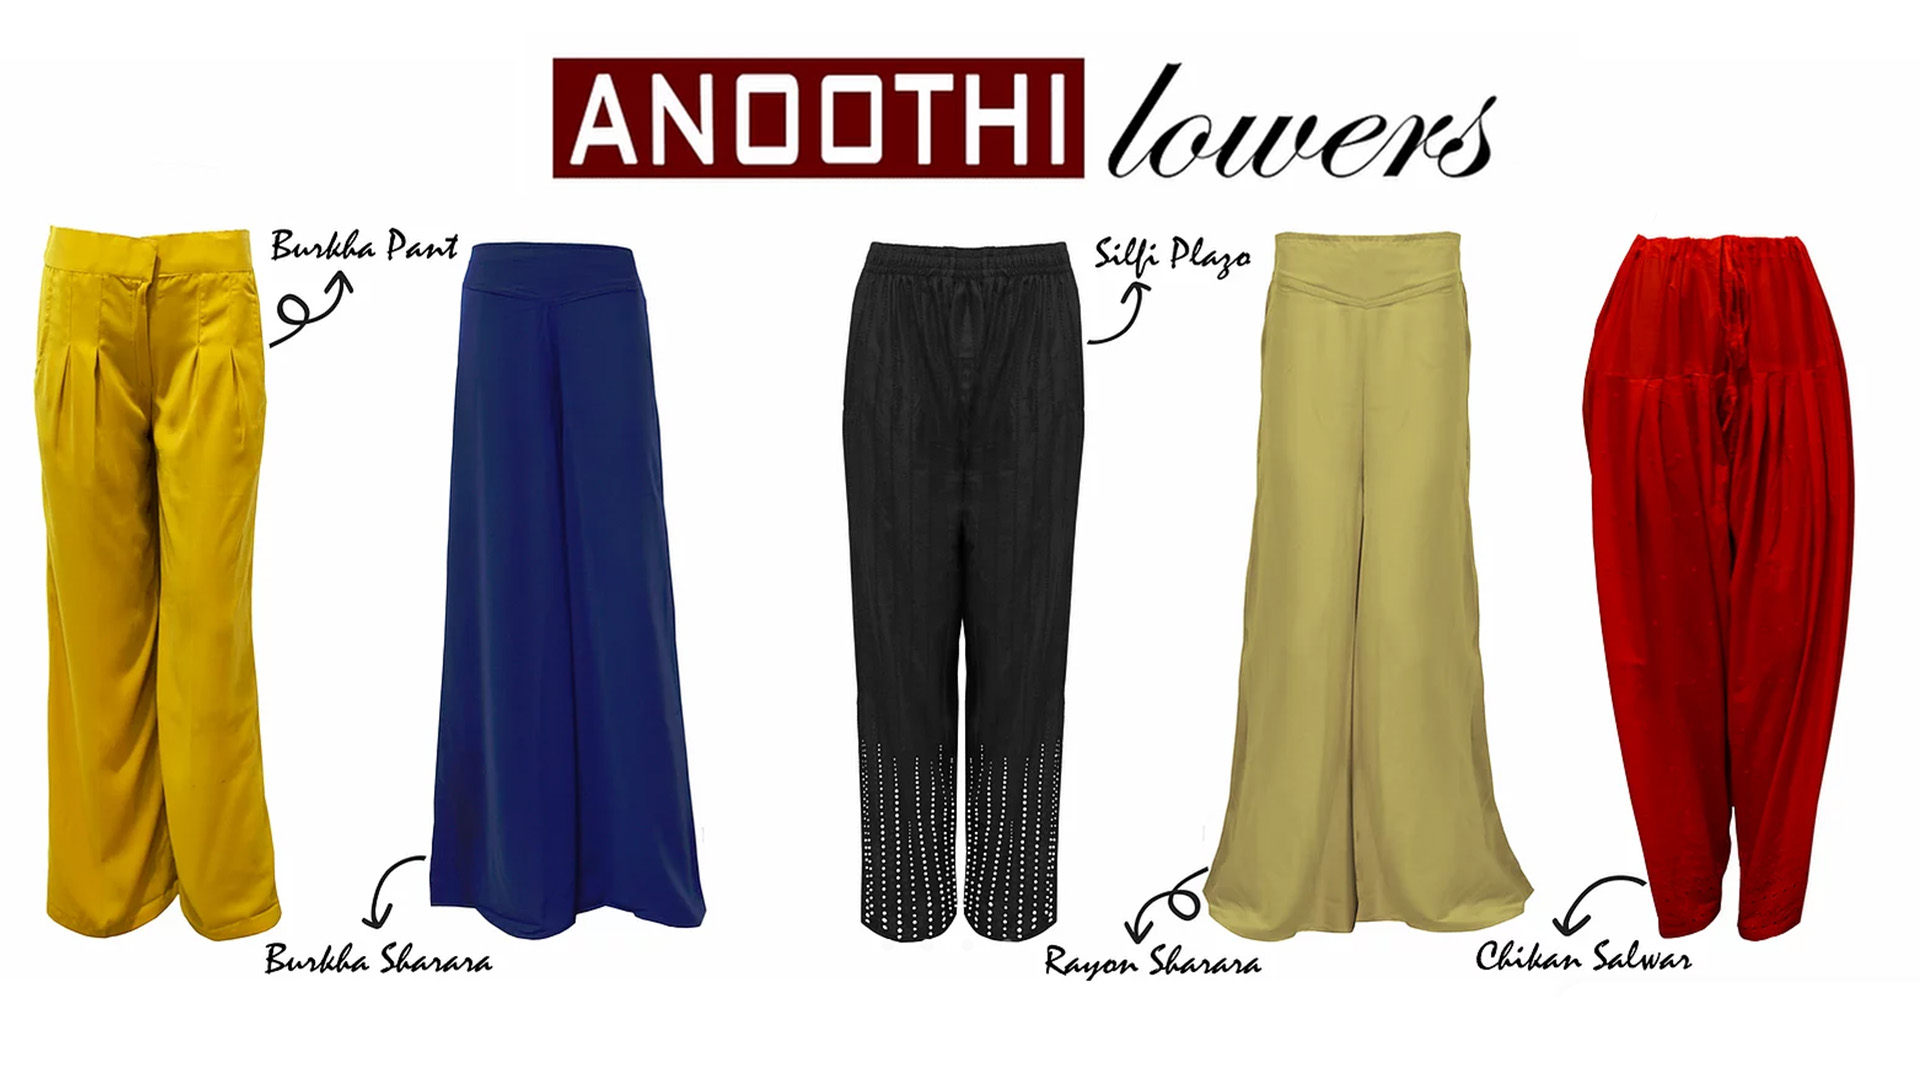 Anoothi lowers